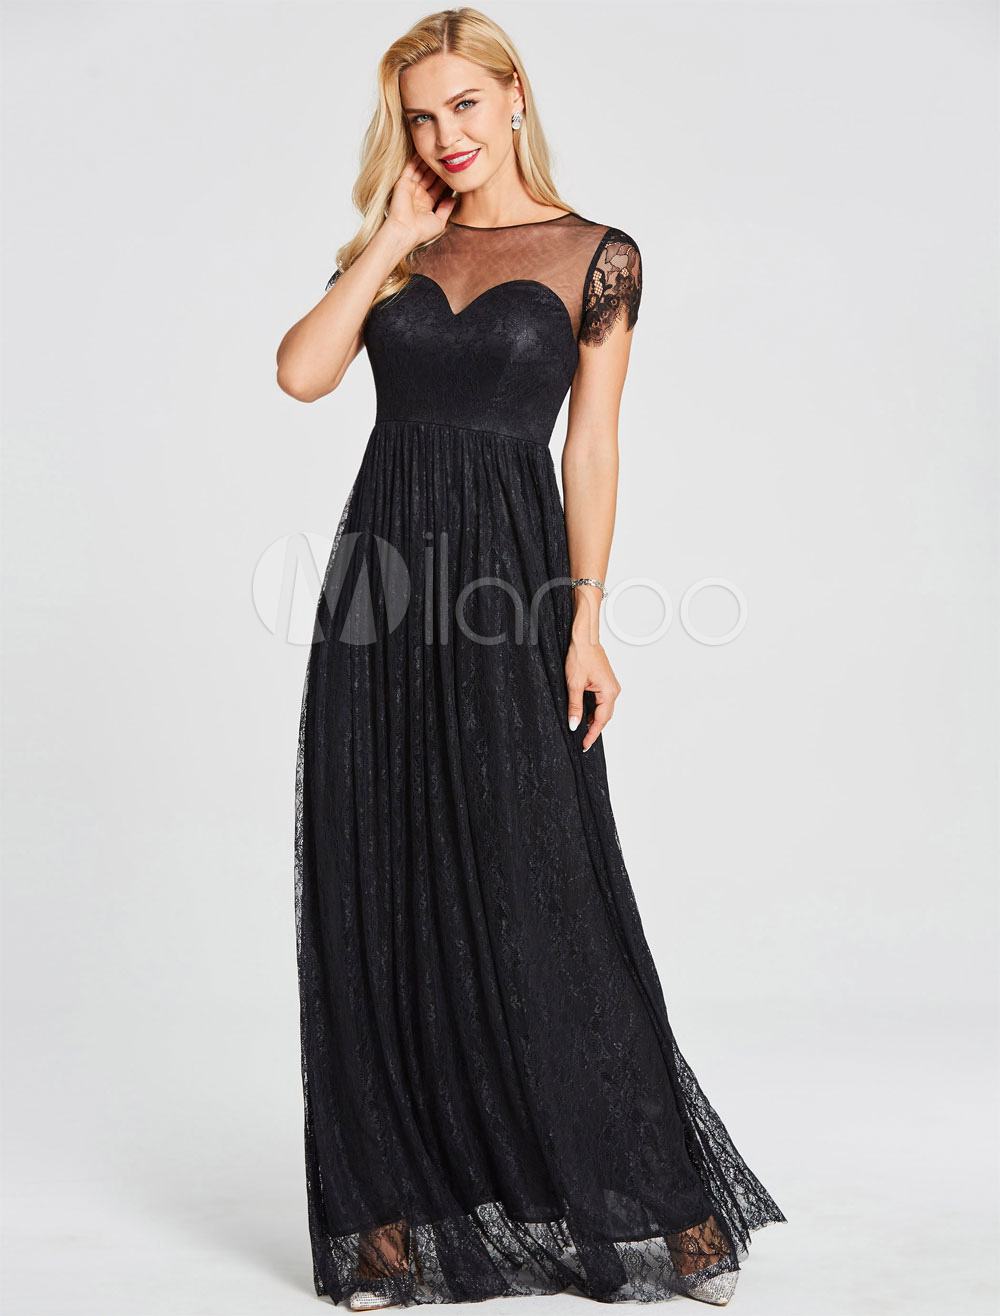 Buy Black Prom Dresses Long Lace Evening Gowns Keyhole Illusion Sweetheart Floor Length Formal Party Dress for $83.59 in Milanoo store